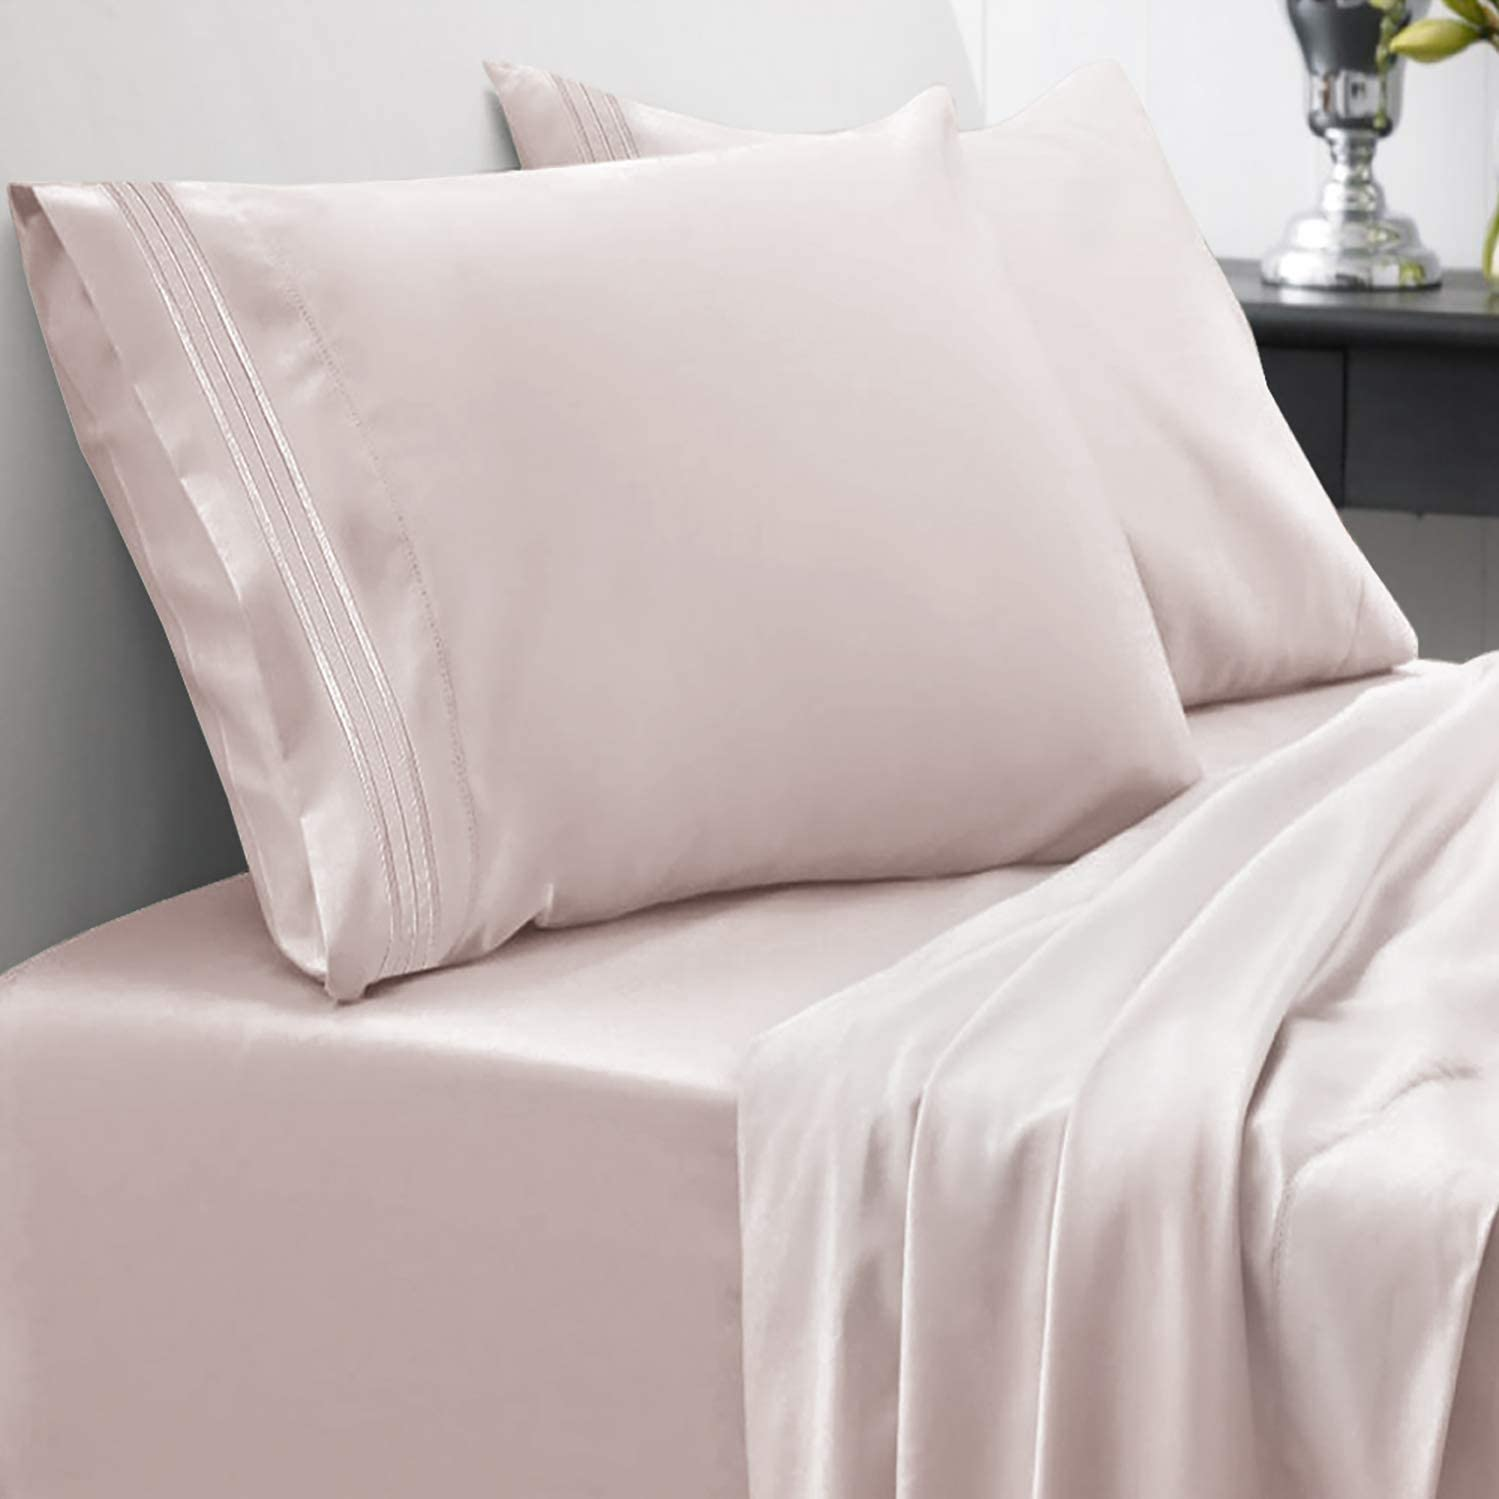 Sweet Home Collection 1800 Thread Count Soft Egyptian Quality Brushed Microfiber Luxury Bedding Set with Flat, Fitted Sheet, 2 Pillow Cases, Queen, Beige